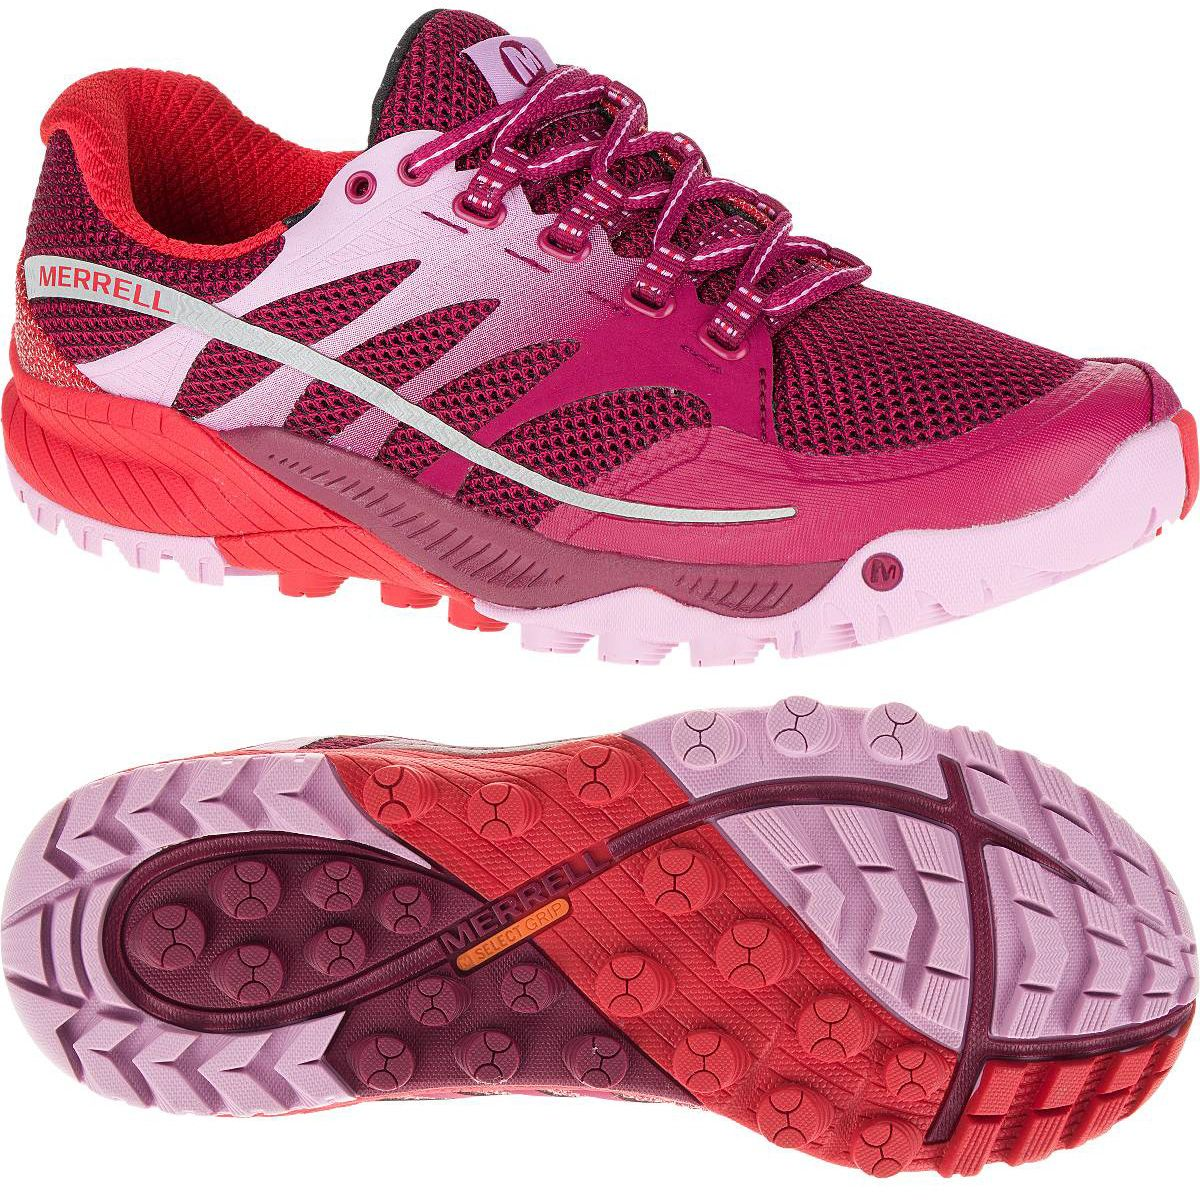 Merrell All Out Charge Ladies Running Shoes Ss16